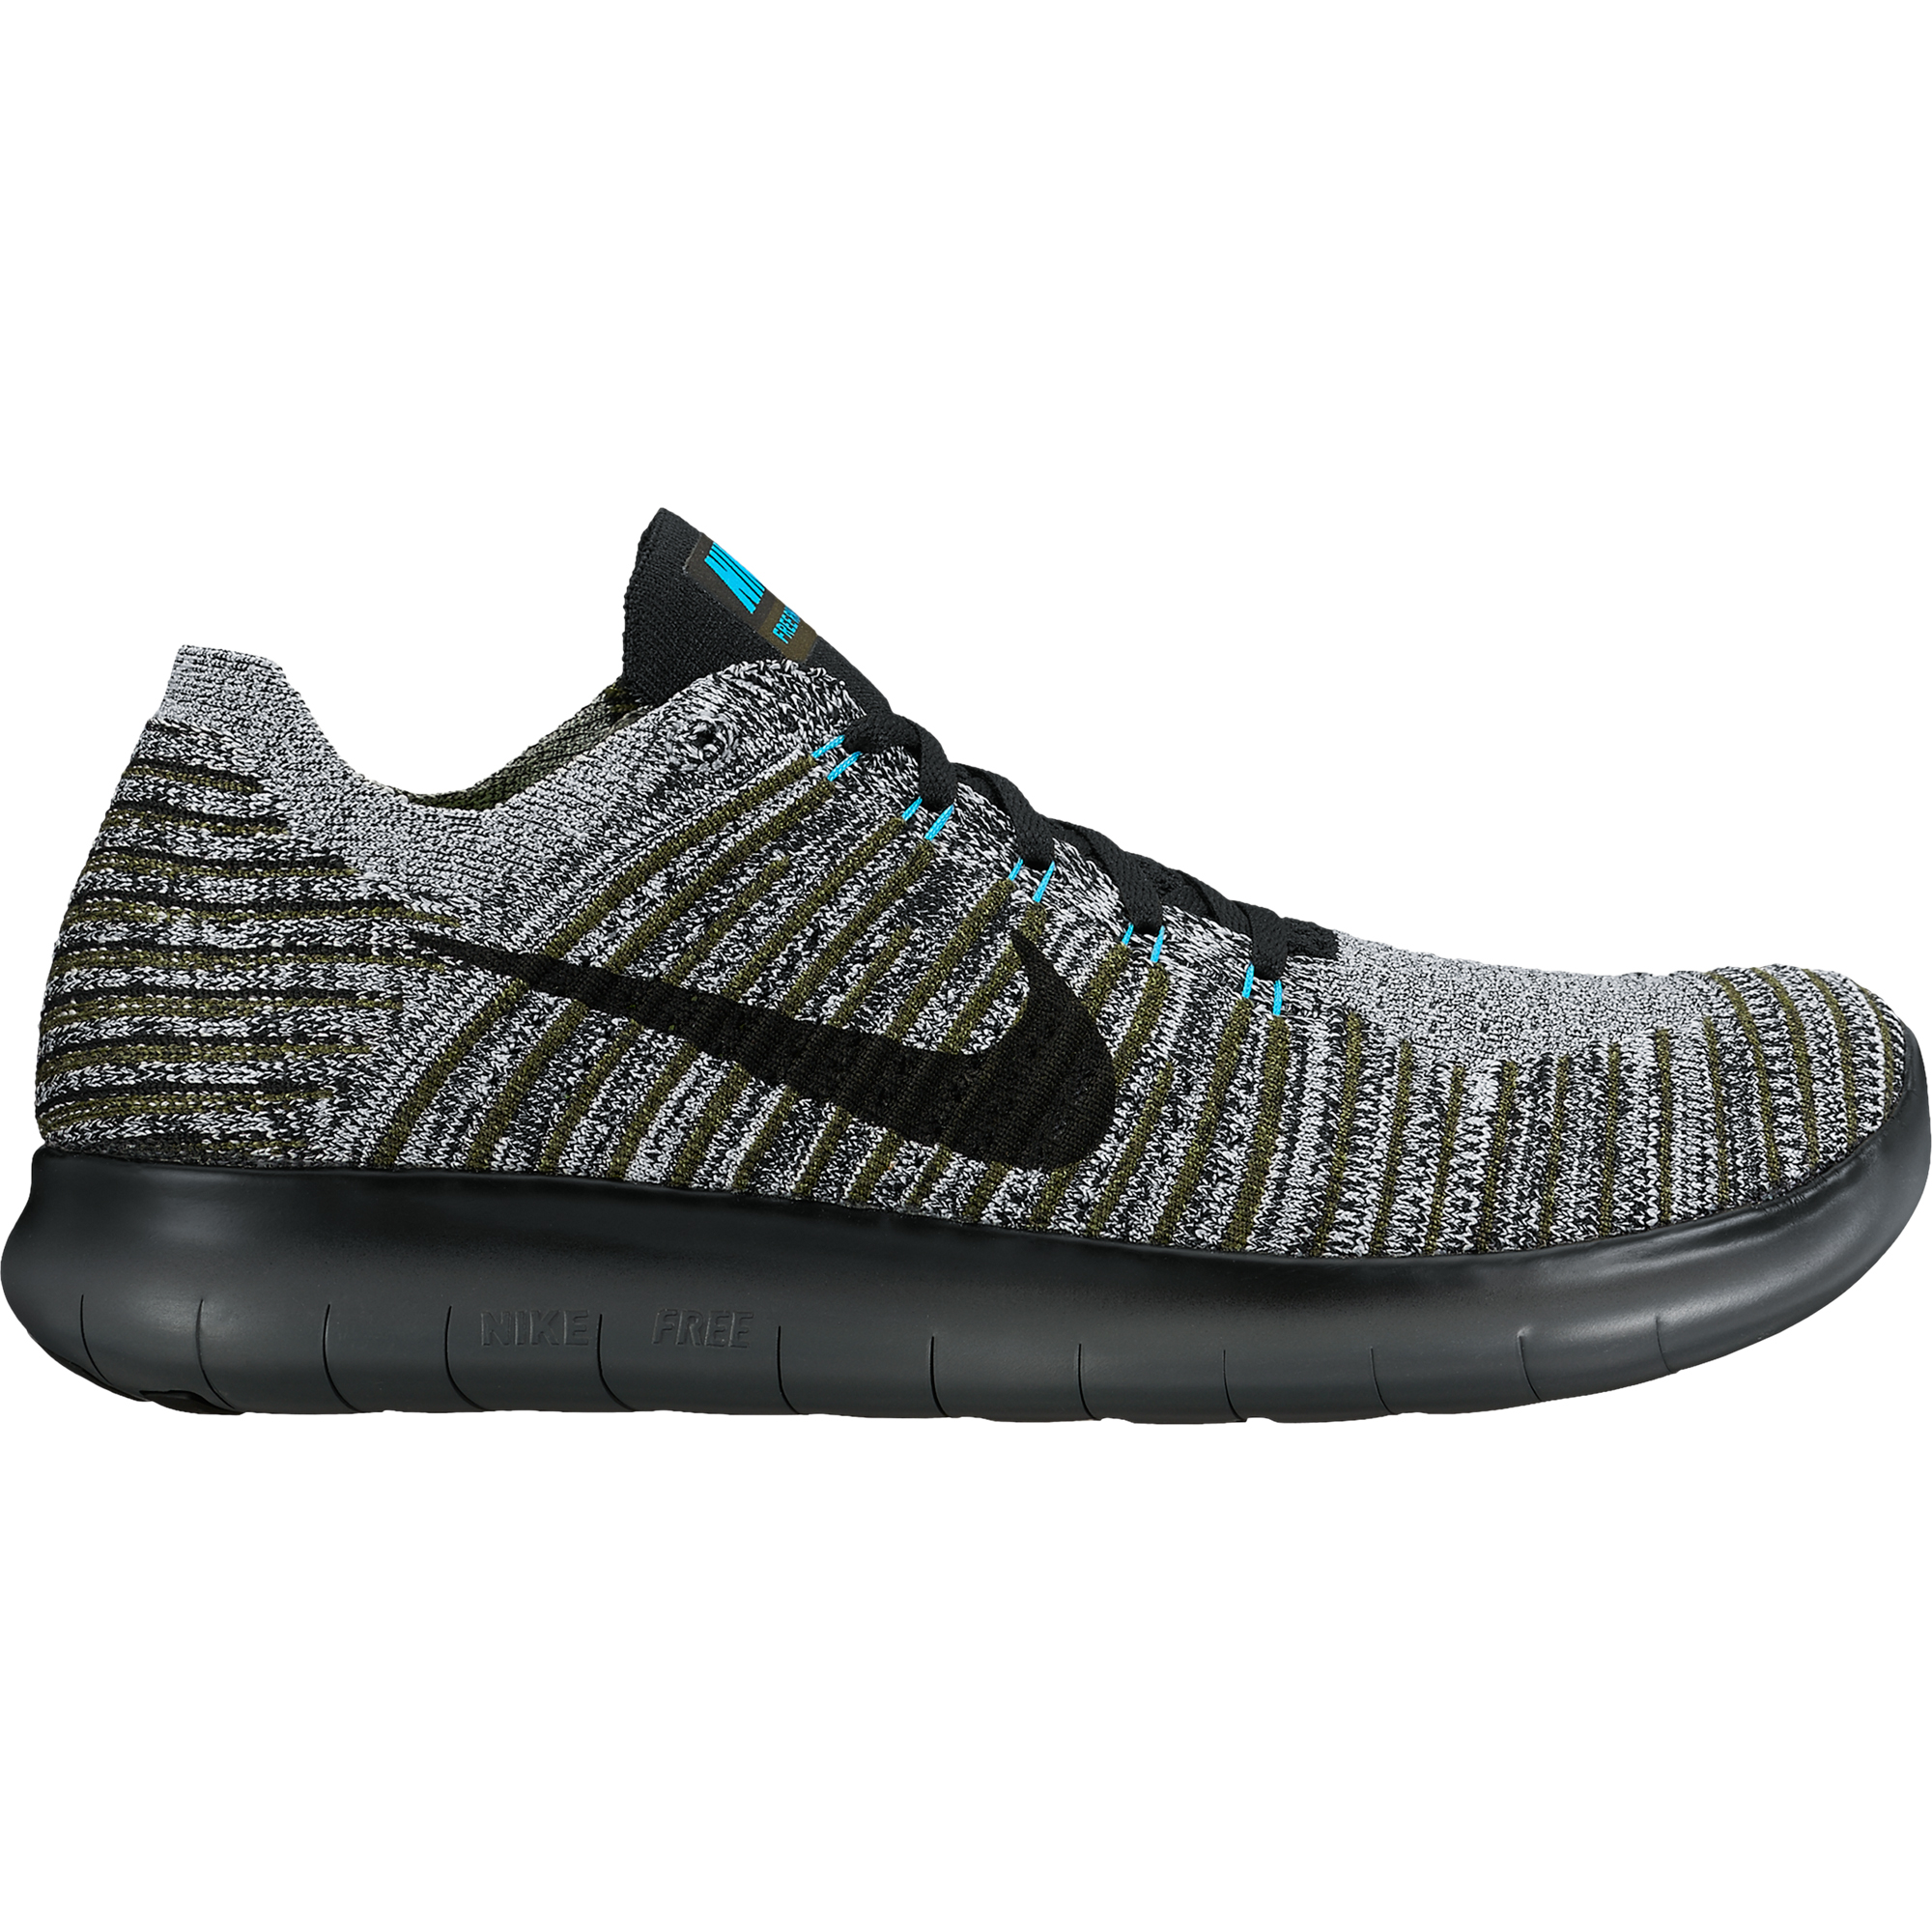 8b6826d7c987ca uk nike flyknit trainer oreo release 2 27 my thoughts 79b62 b32e3  denmark  nike free run flyknit road running shoes mens cc05d bb2fa